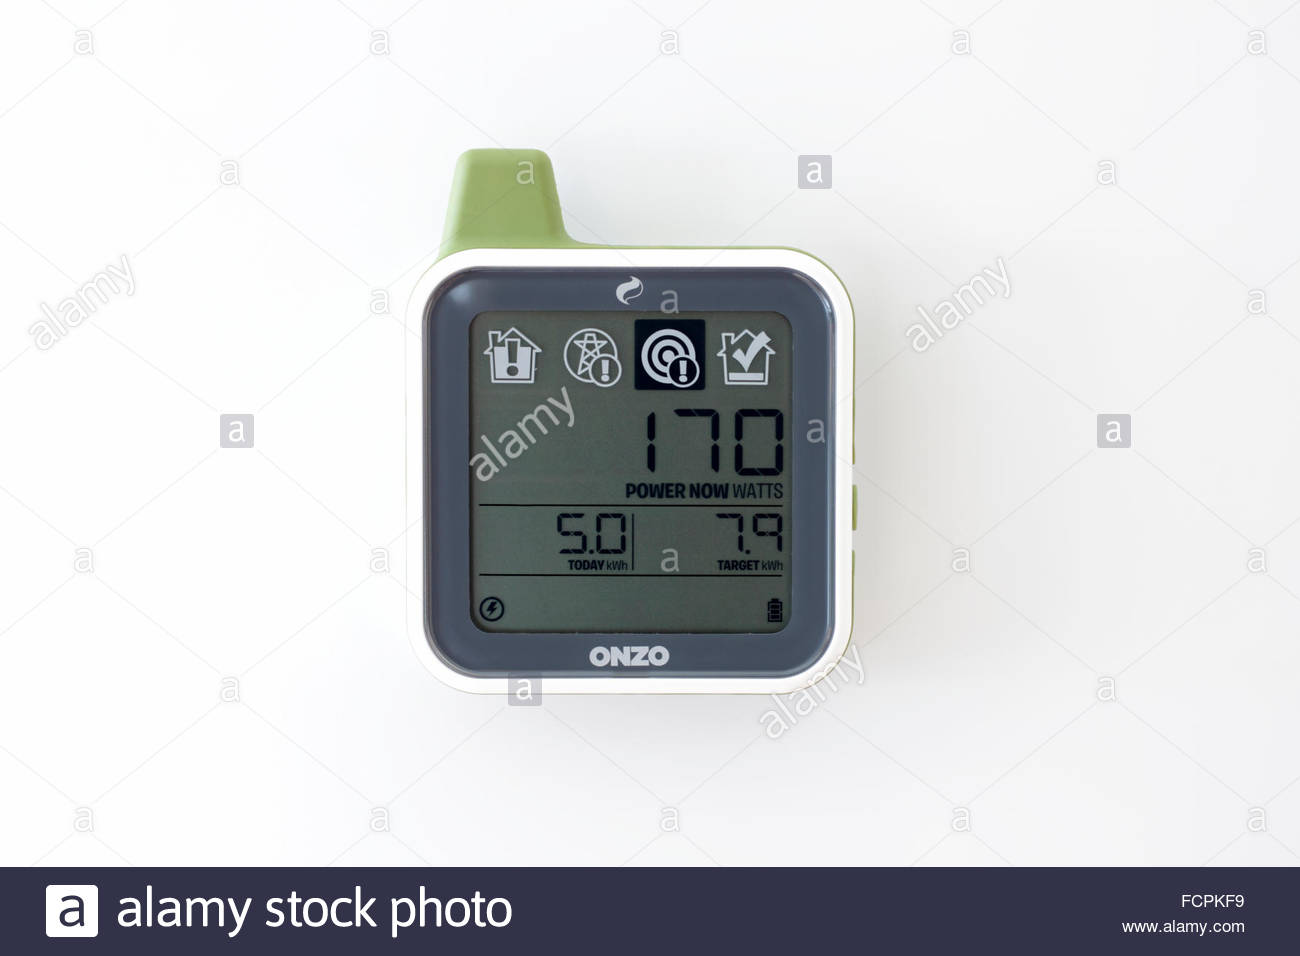 Electricity and Gas Home Smart Meter UK - Stock Image